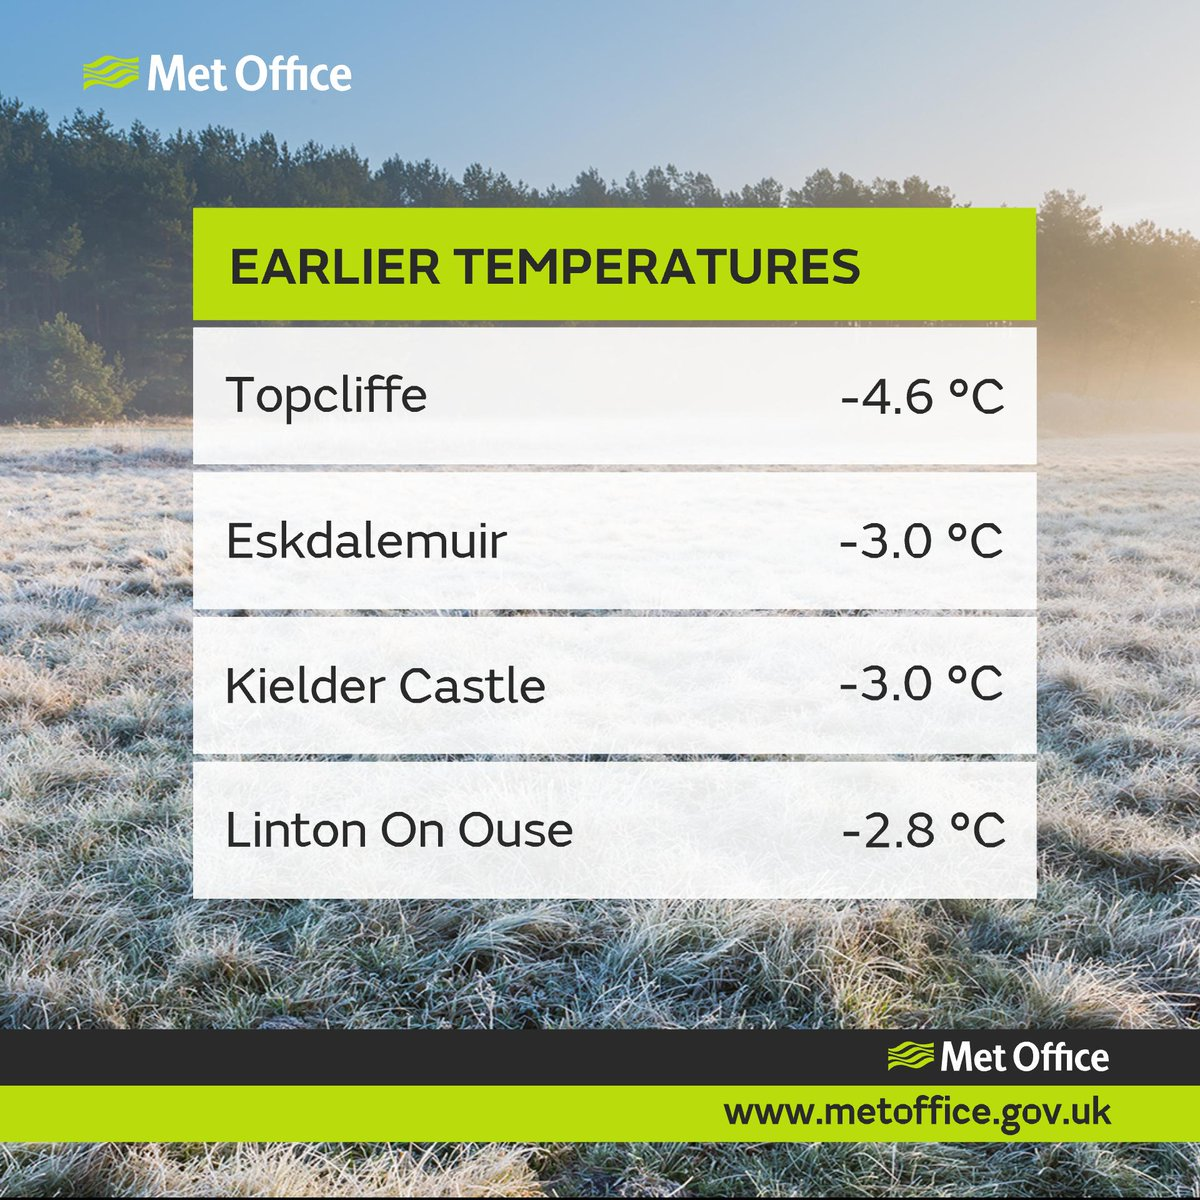 It's a cold start to the new working week - here are some of the coldest spots, with temperatures still falling in places 😮